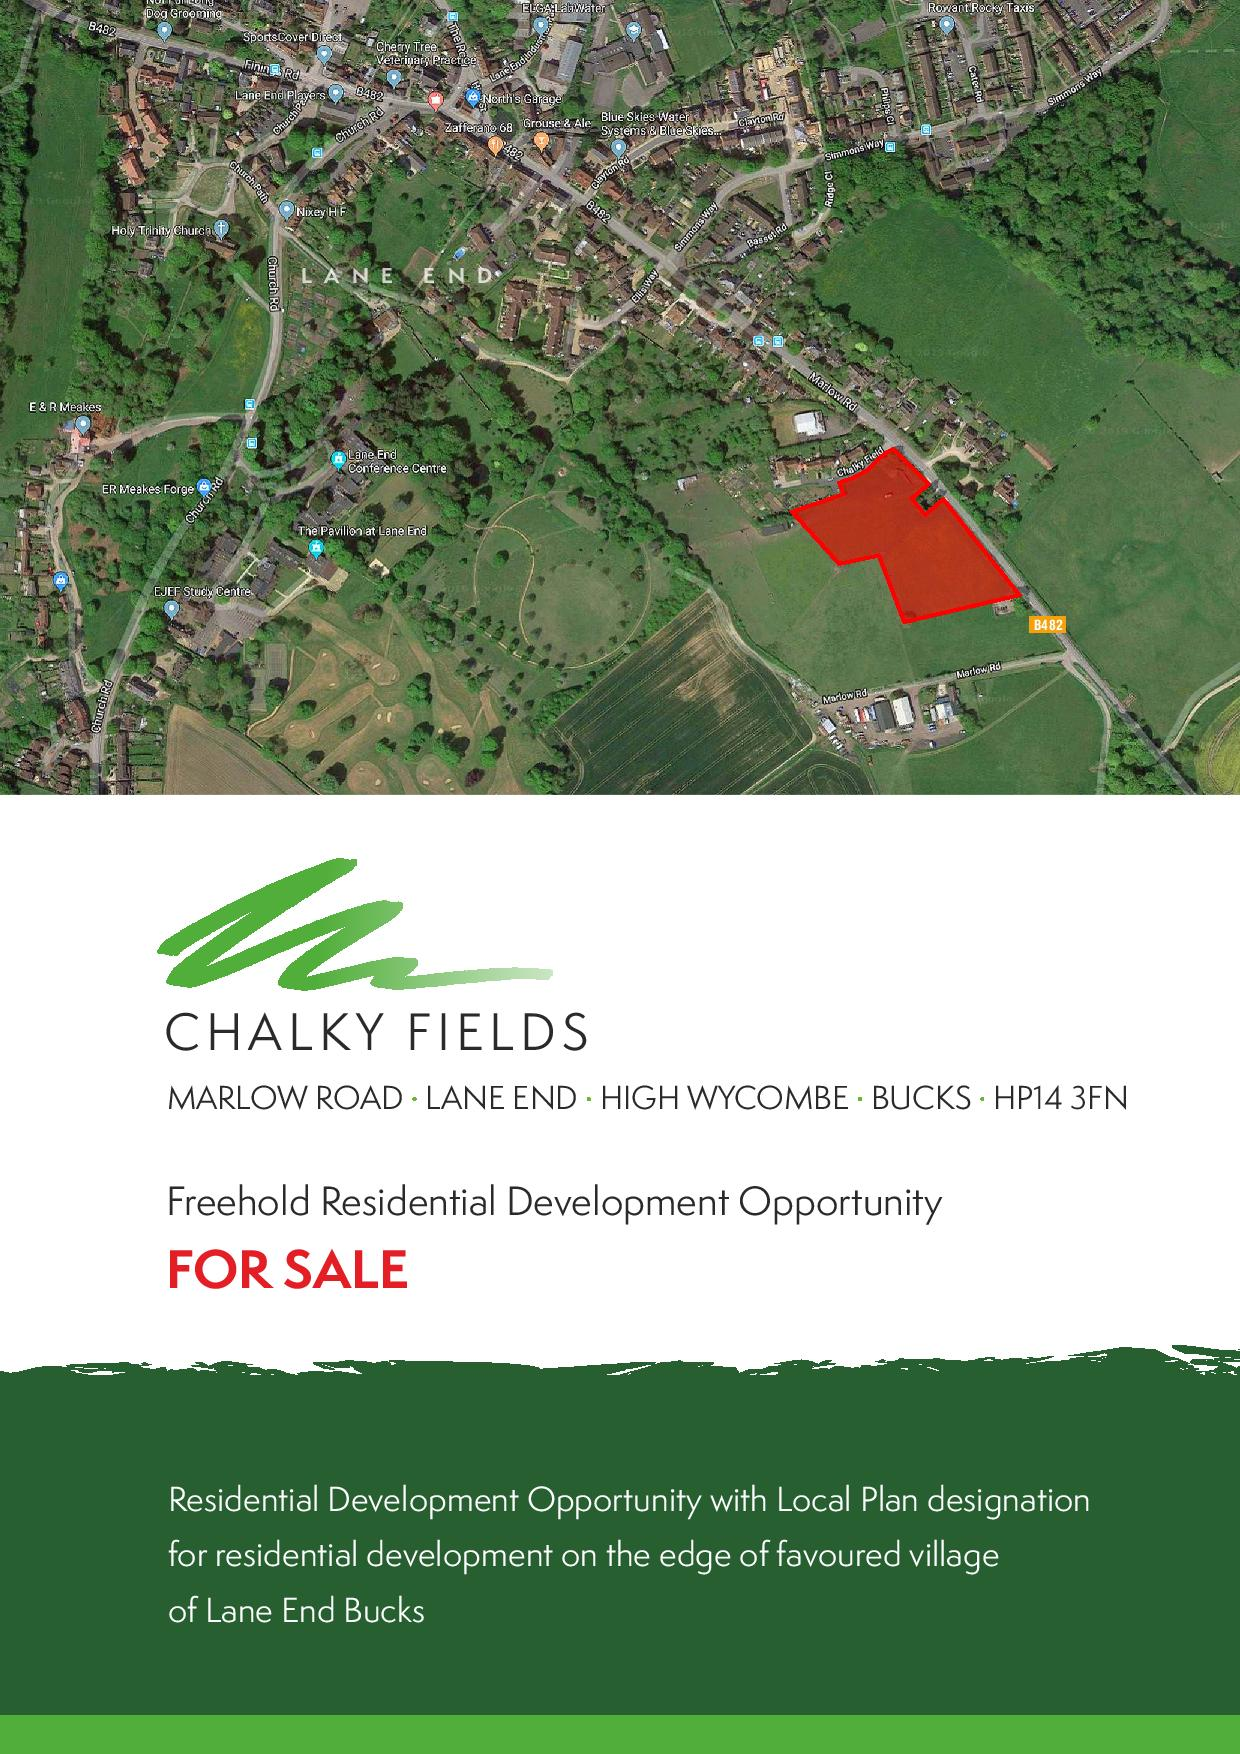 Land At Chalky Fields, Marlow Road, Lane End